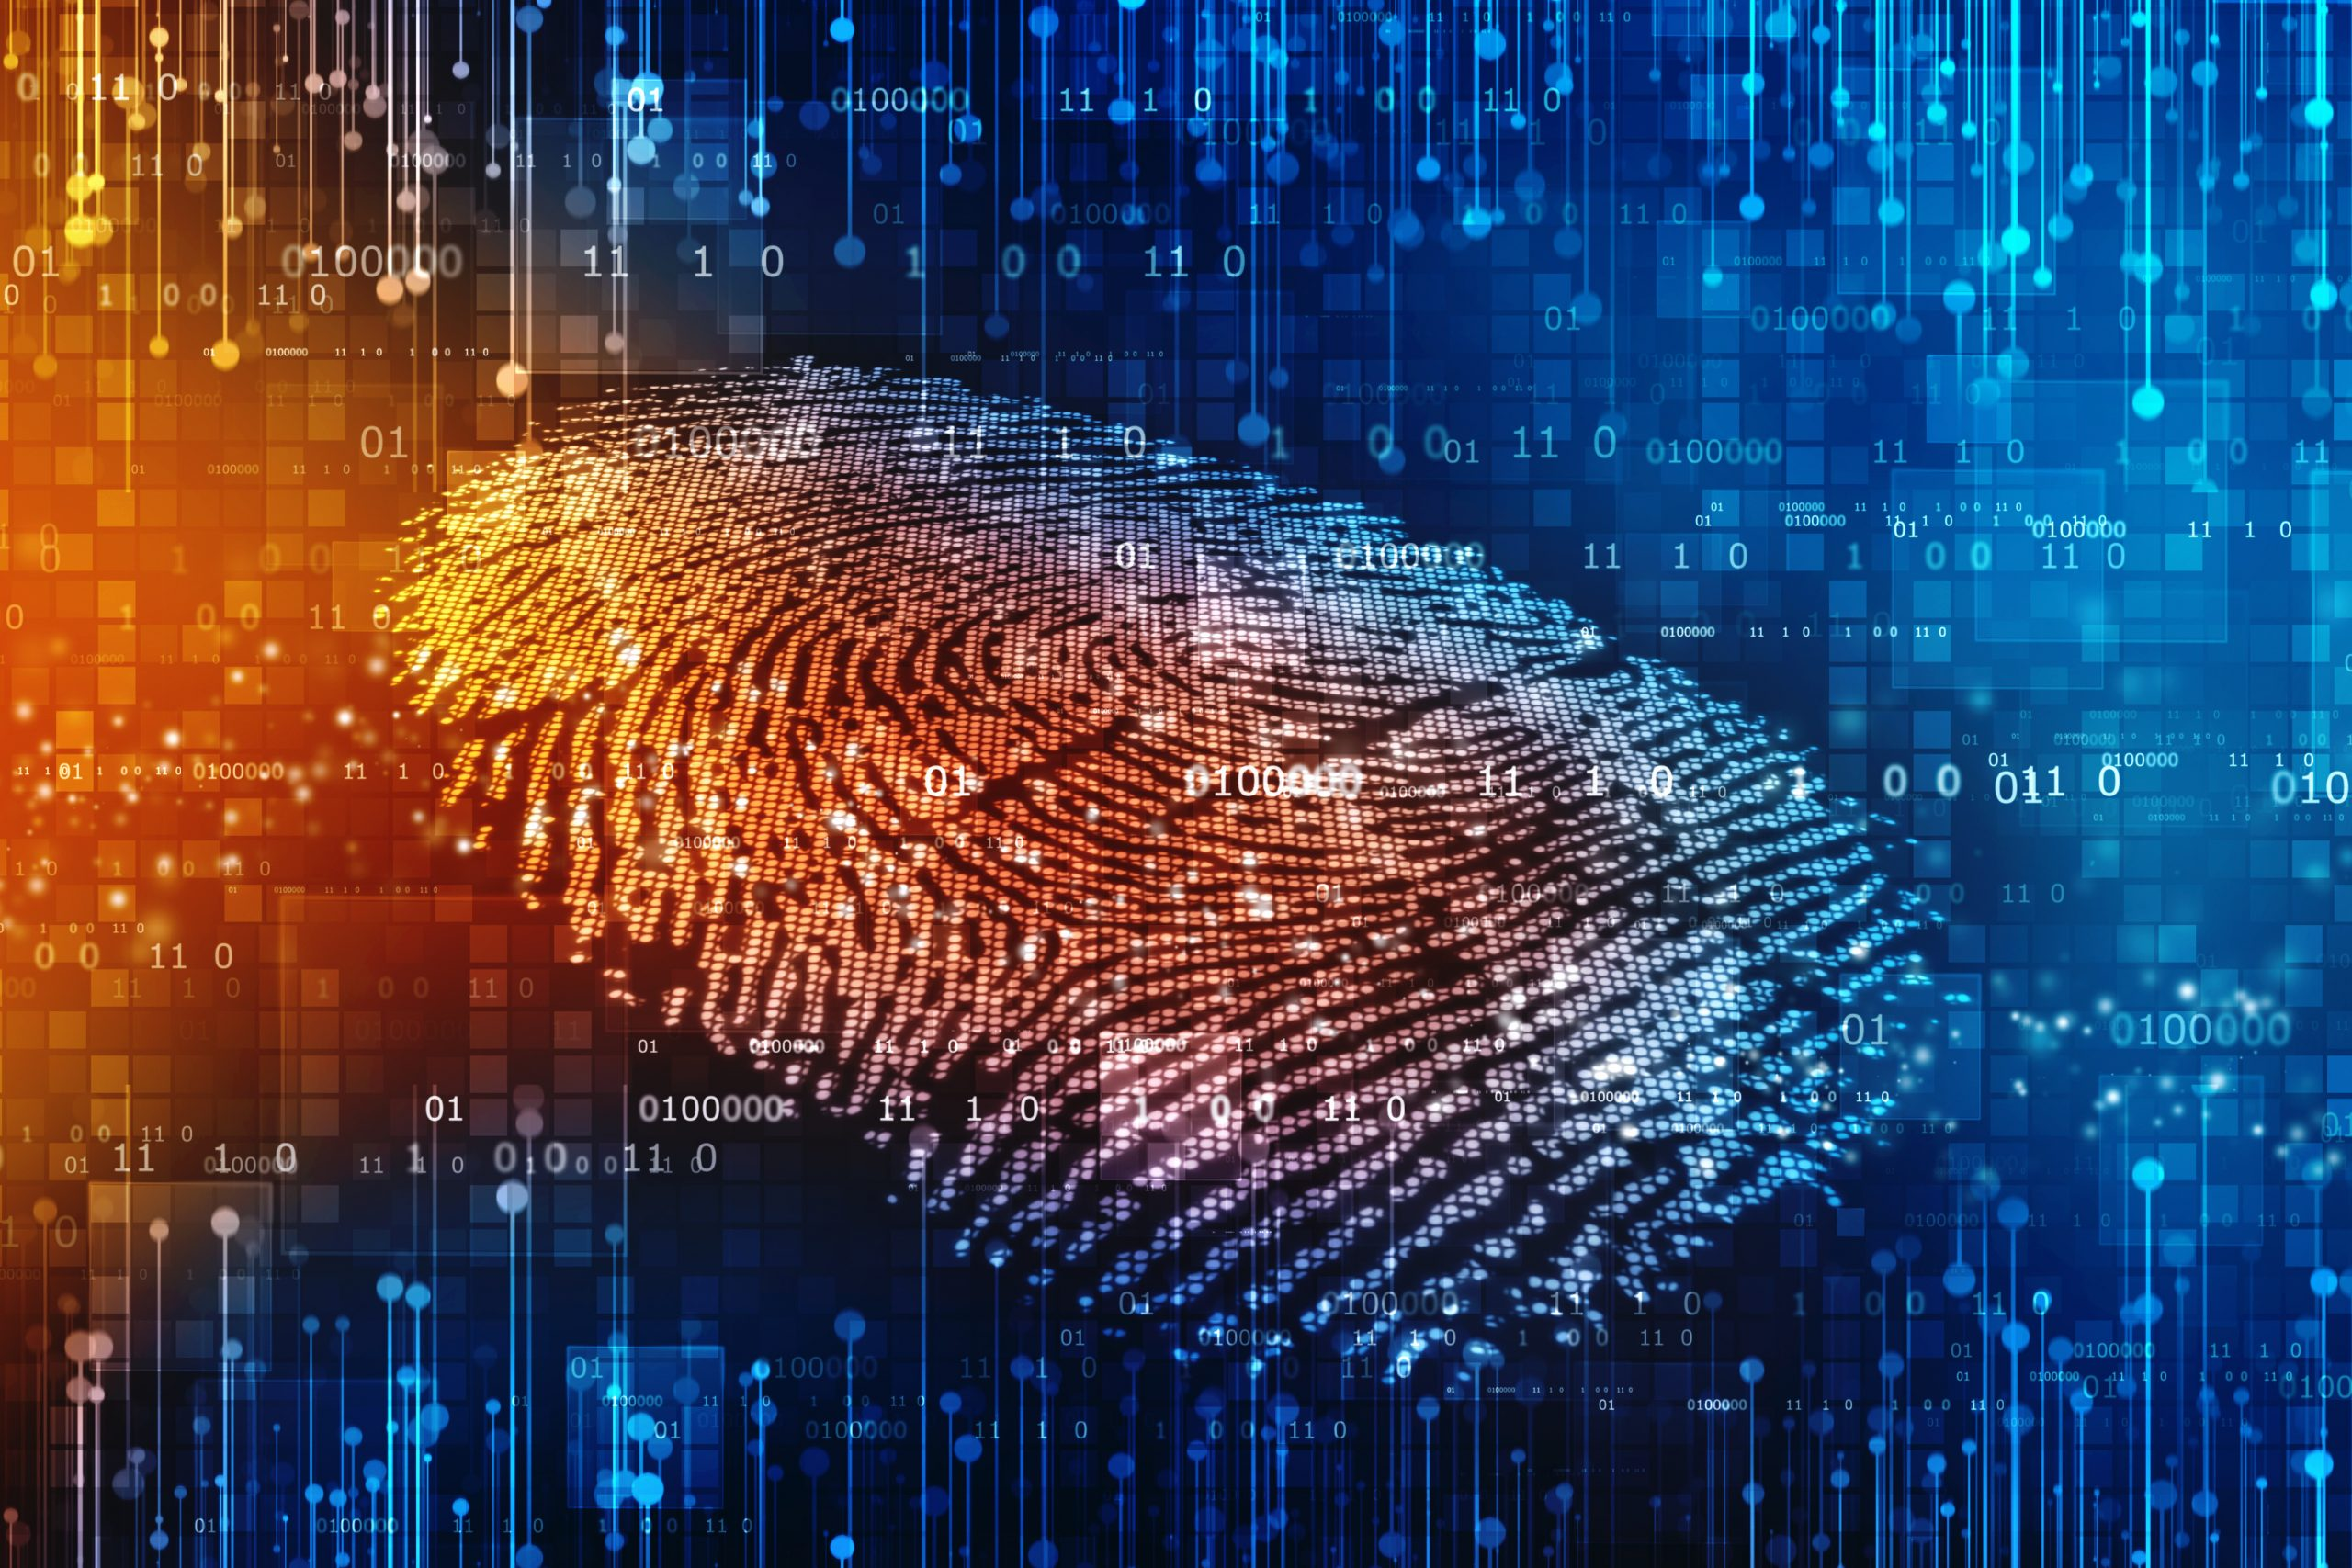 Biometric Quality: Four issues that challenge biometrics today